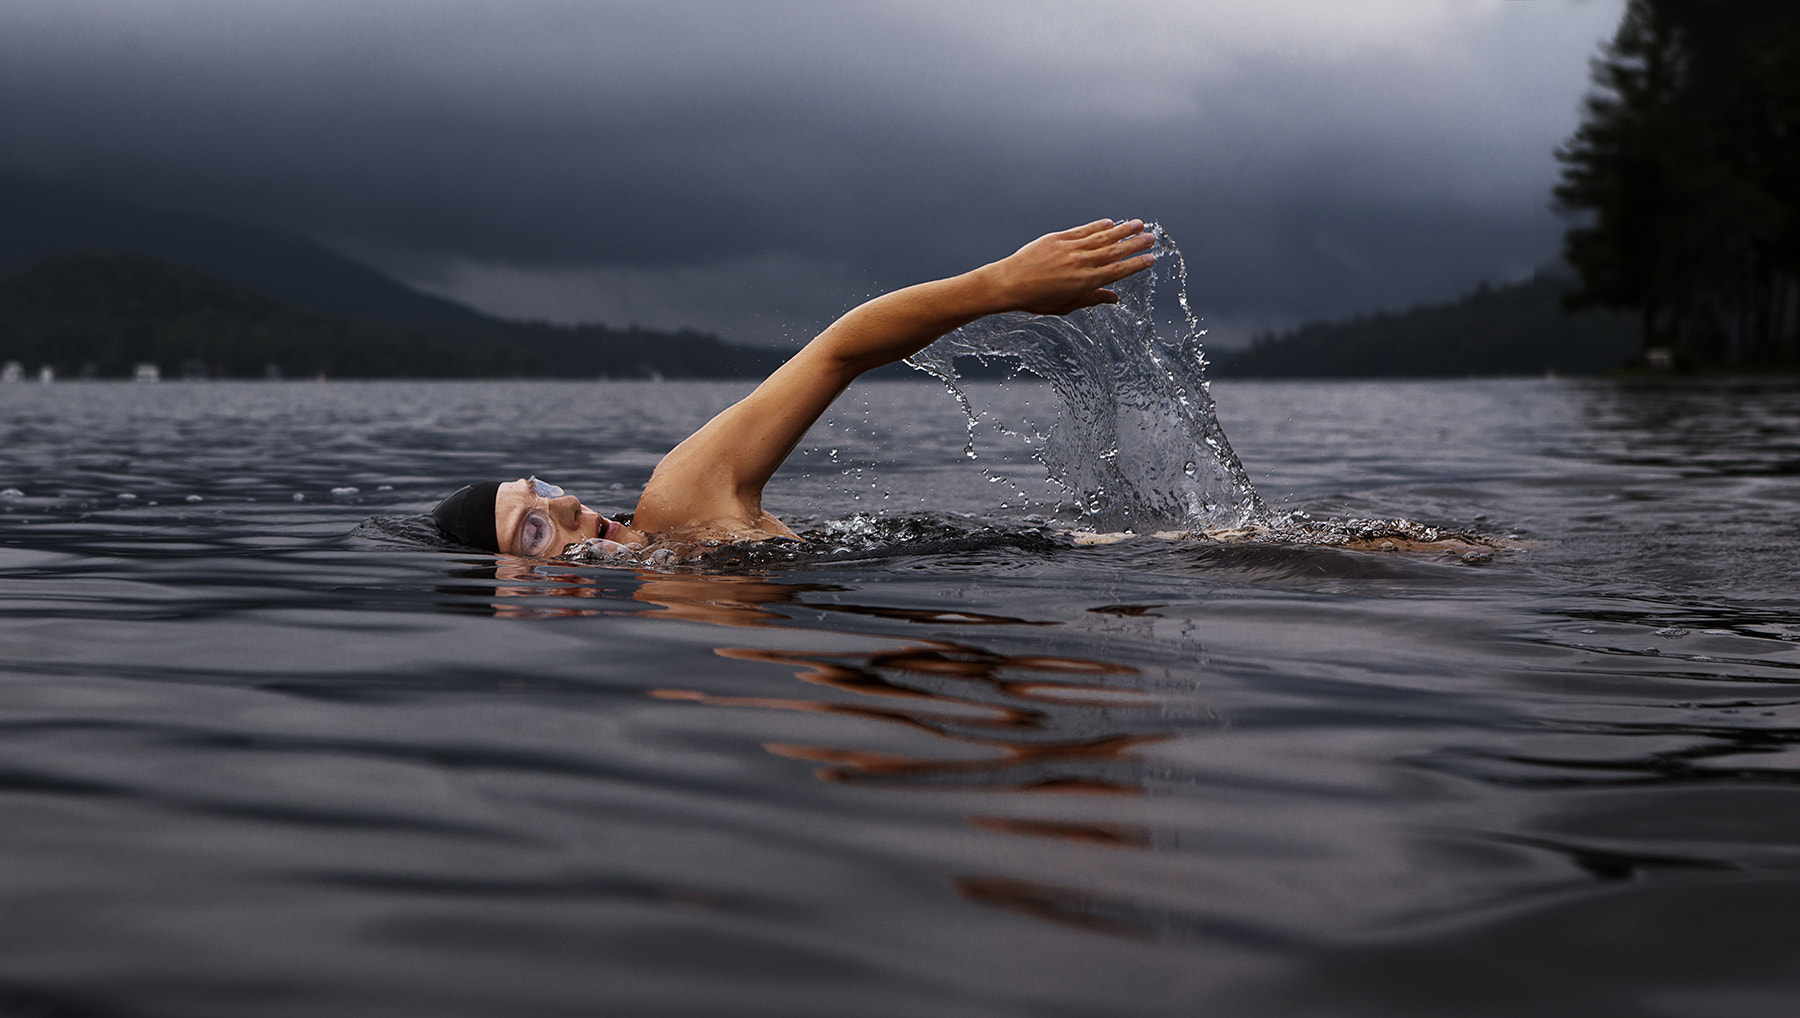 Photograph Swimming by Todd Quackenbush on 500px